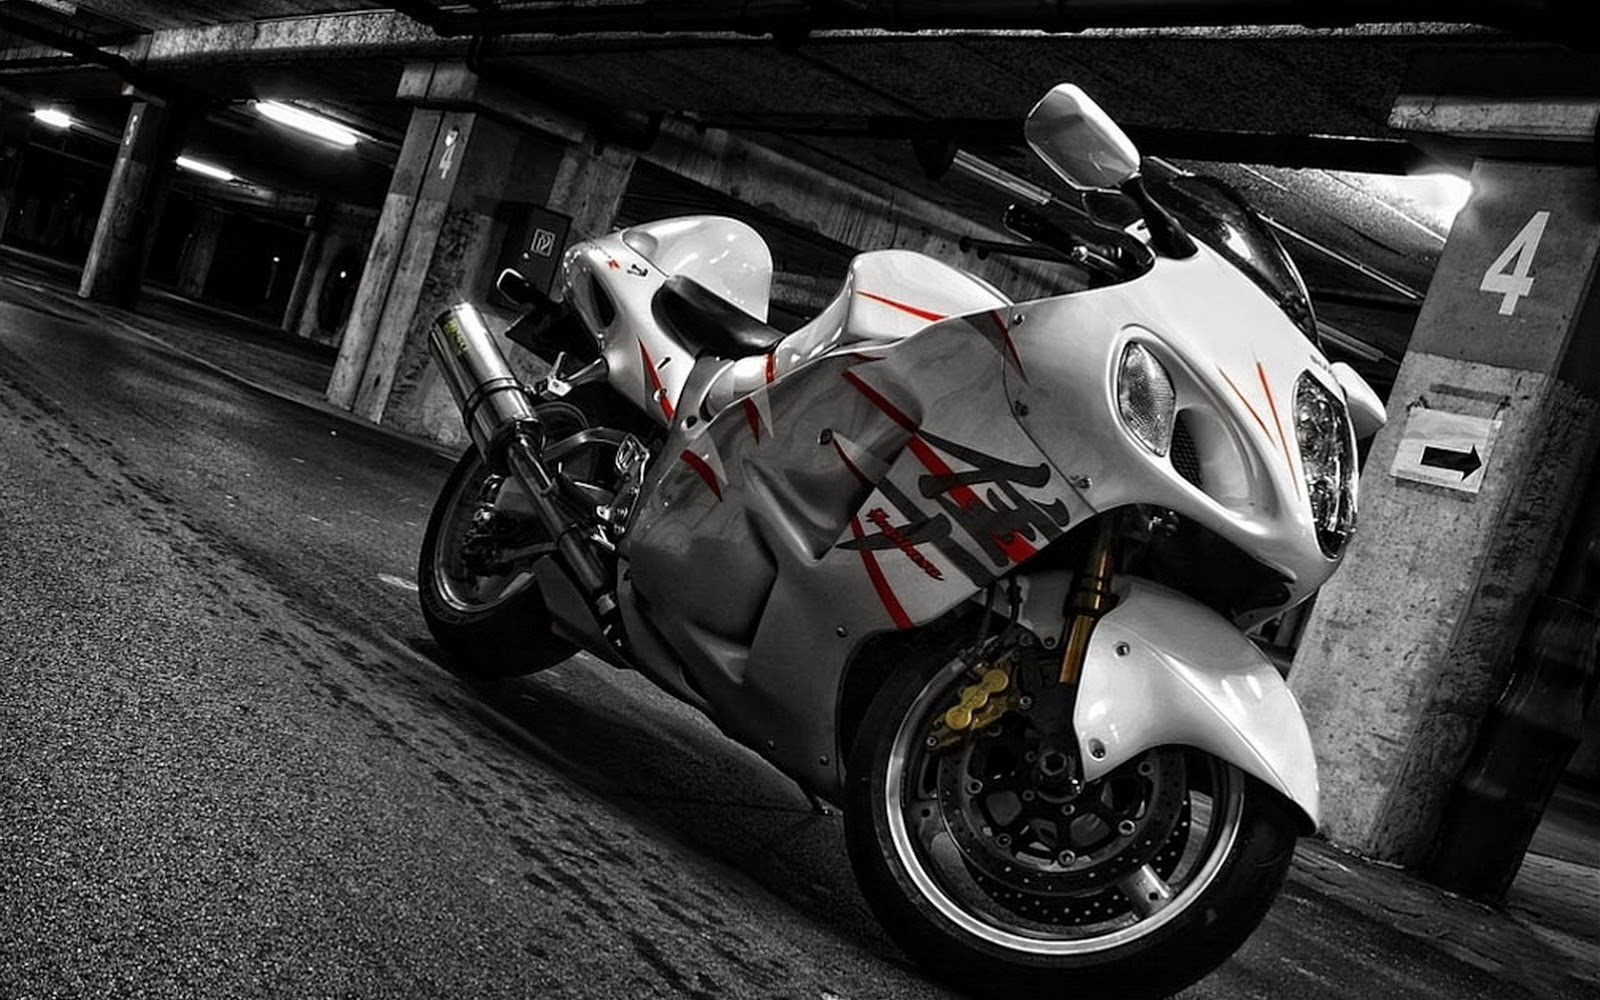 Cool Bike New Hd Wallpaper 2014 All About Hd Wallpapers